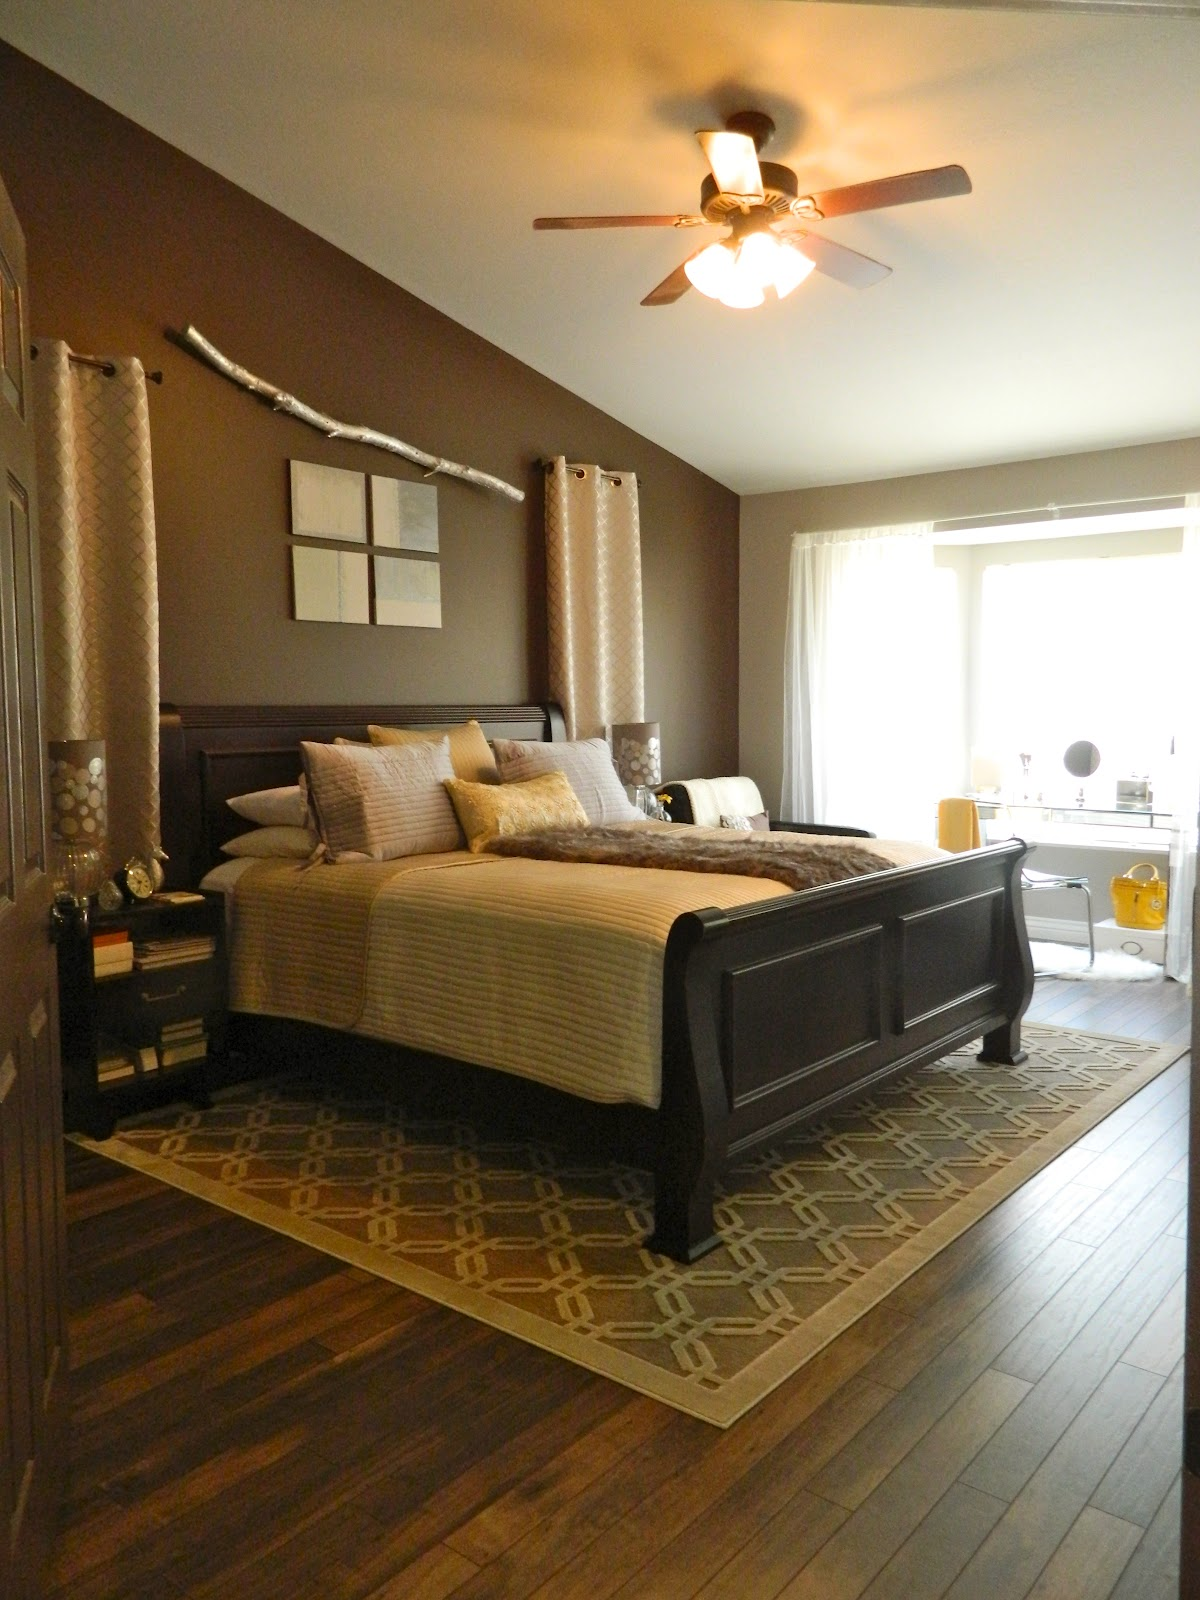 smitten by abigail mr and mrs smitten your suite is ready master bedroom reveal. Black Bedroom Furniture Sets. Home Design Ideas